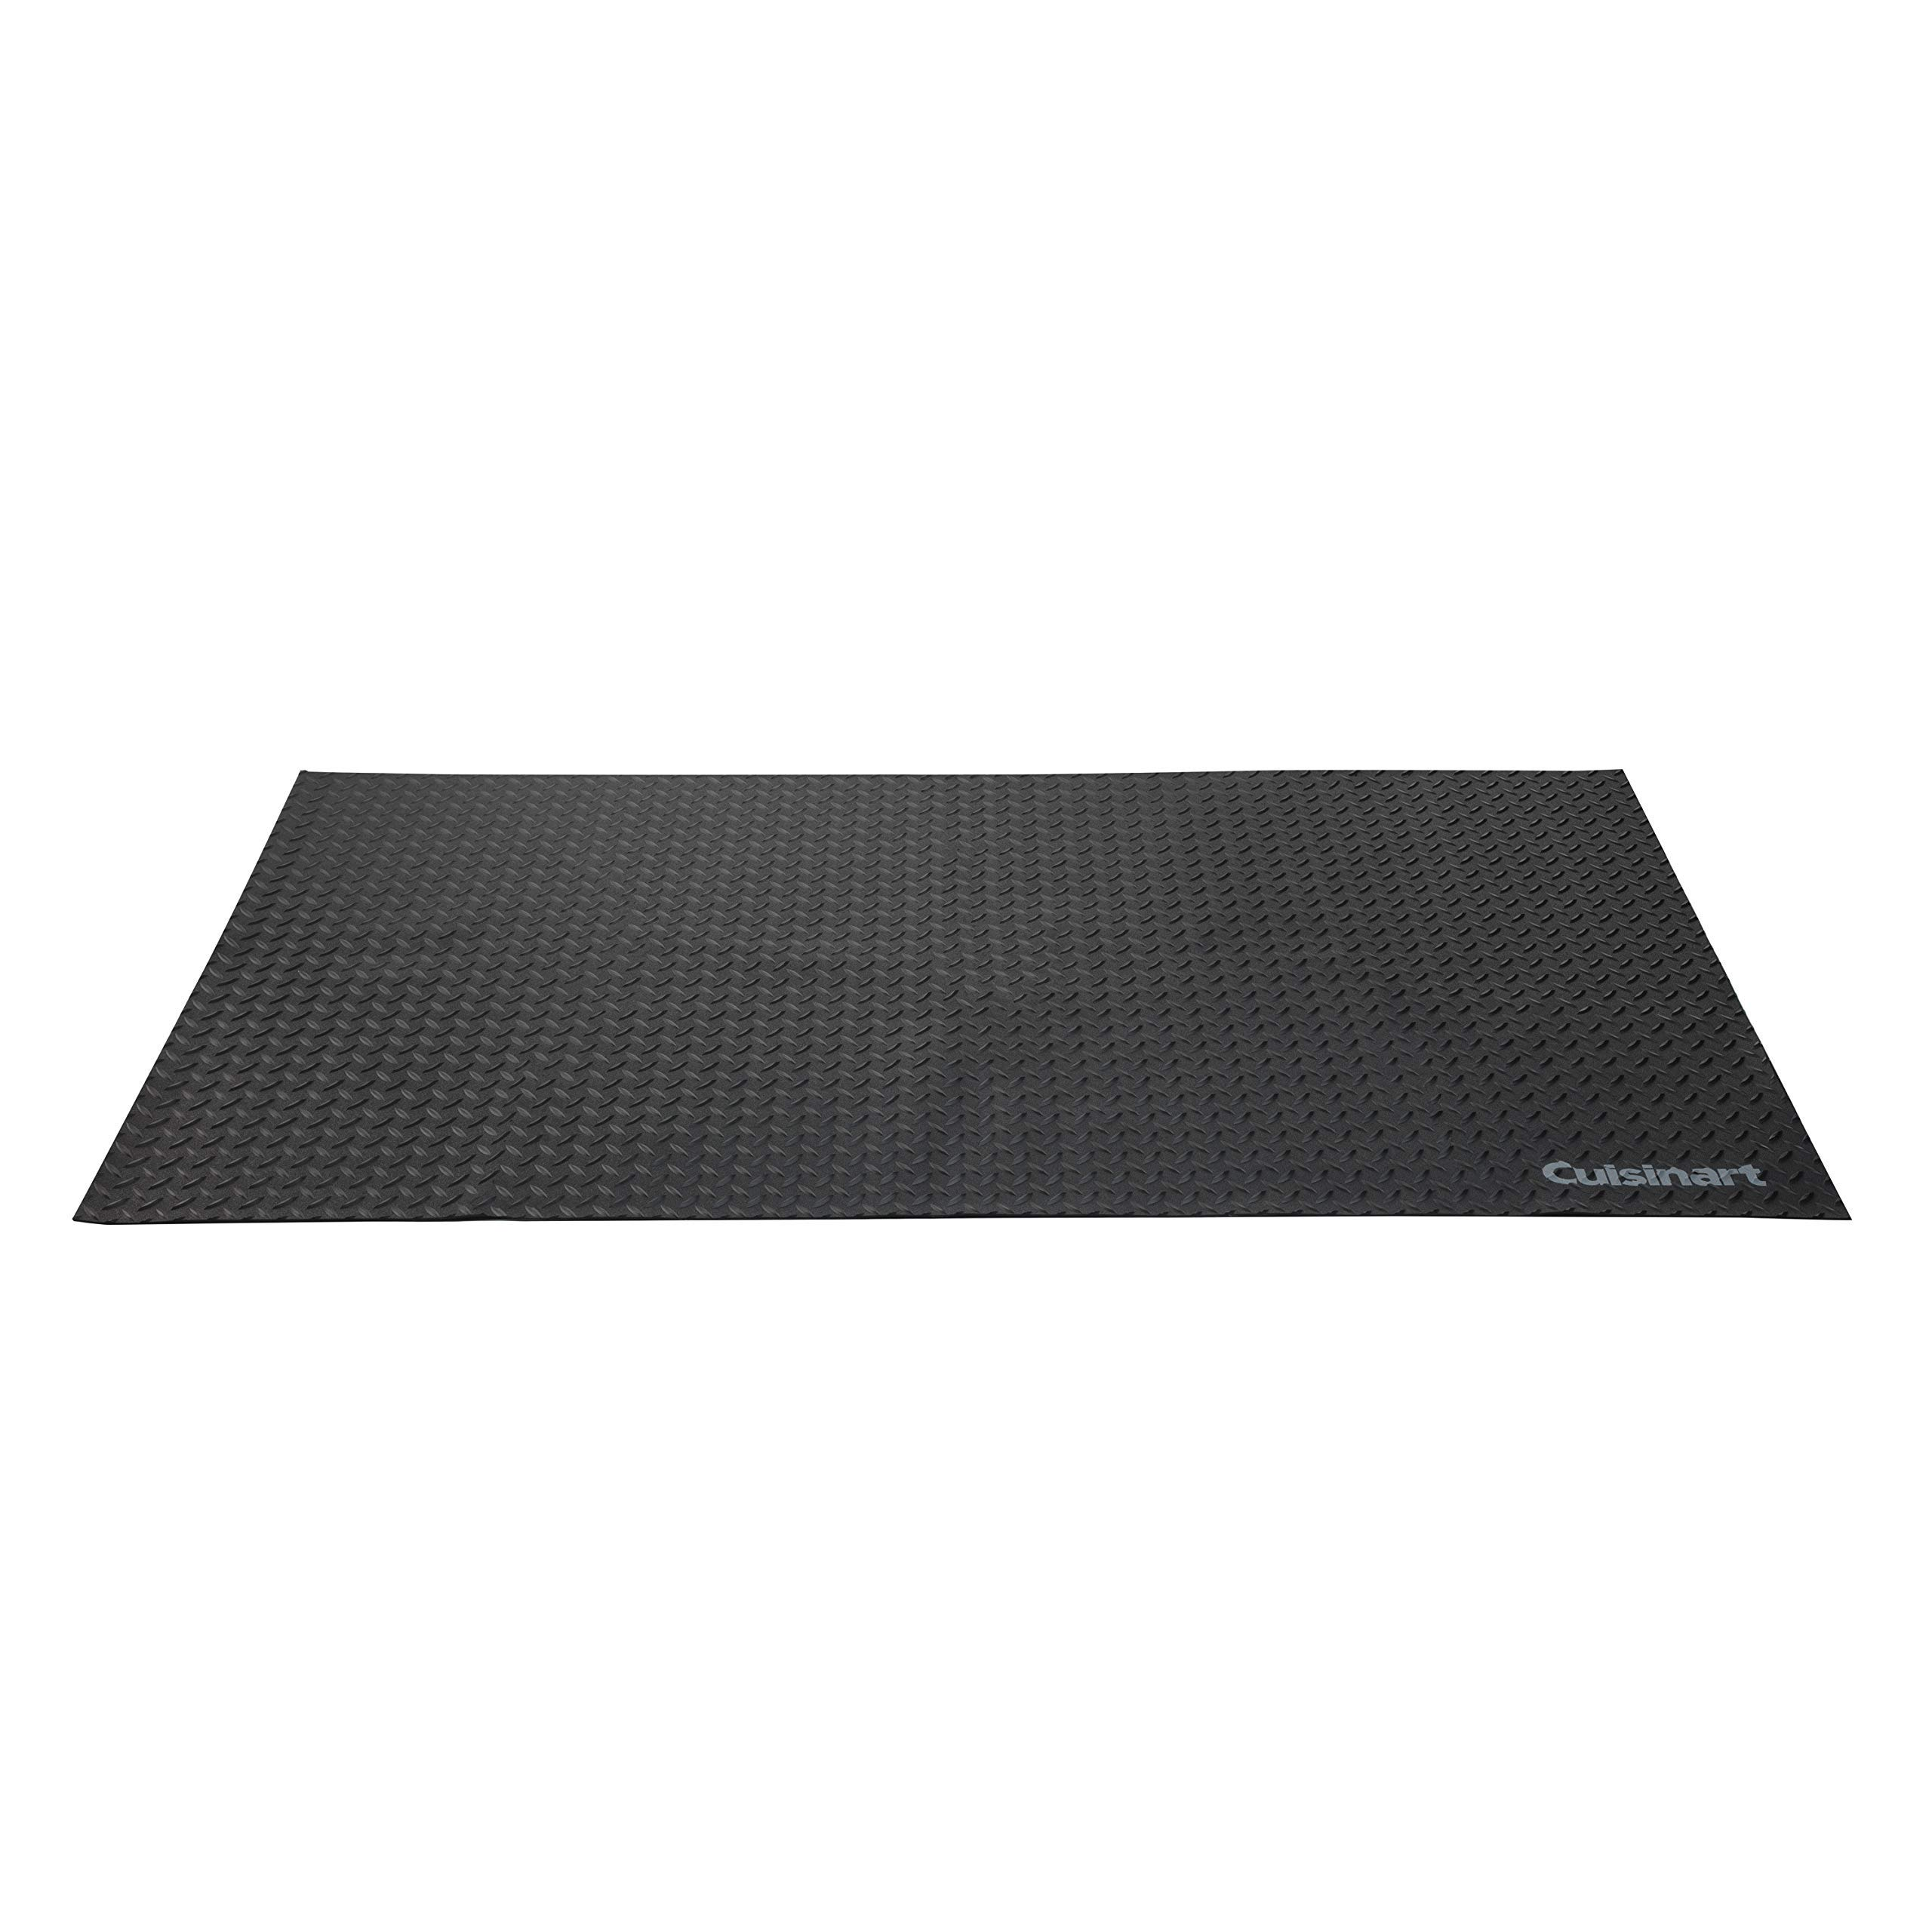 Cuisinart CGMT-300 Premium Deck and Patio Grill Mat, 65'' x 36 (Renewed) by Cuisinart